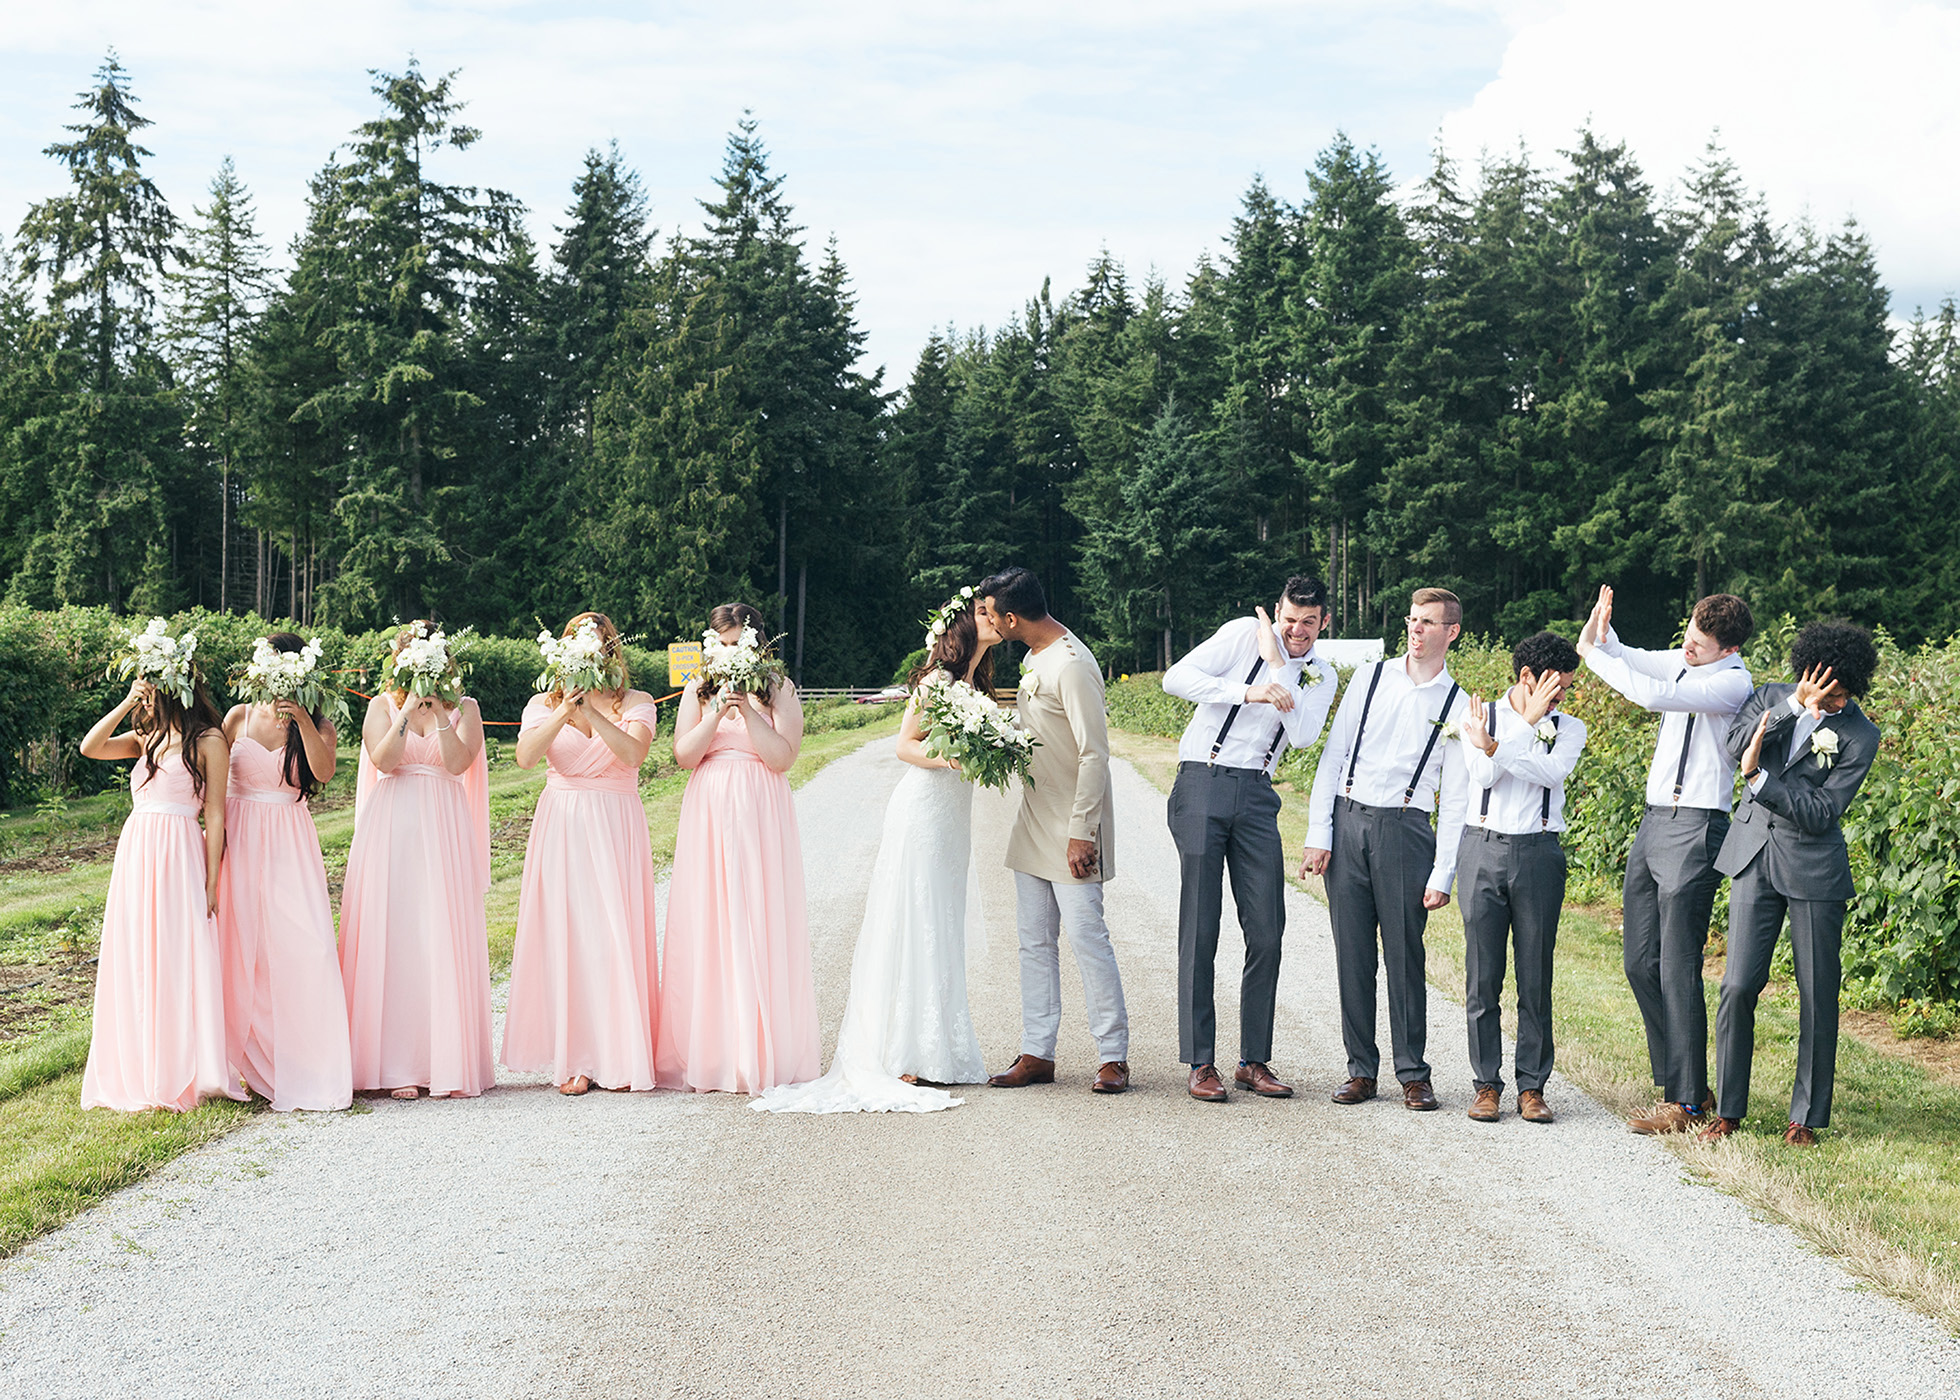 wedding_photographer_vancouver-17.jpg